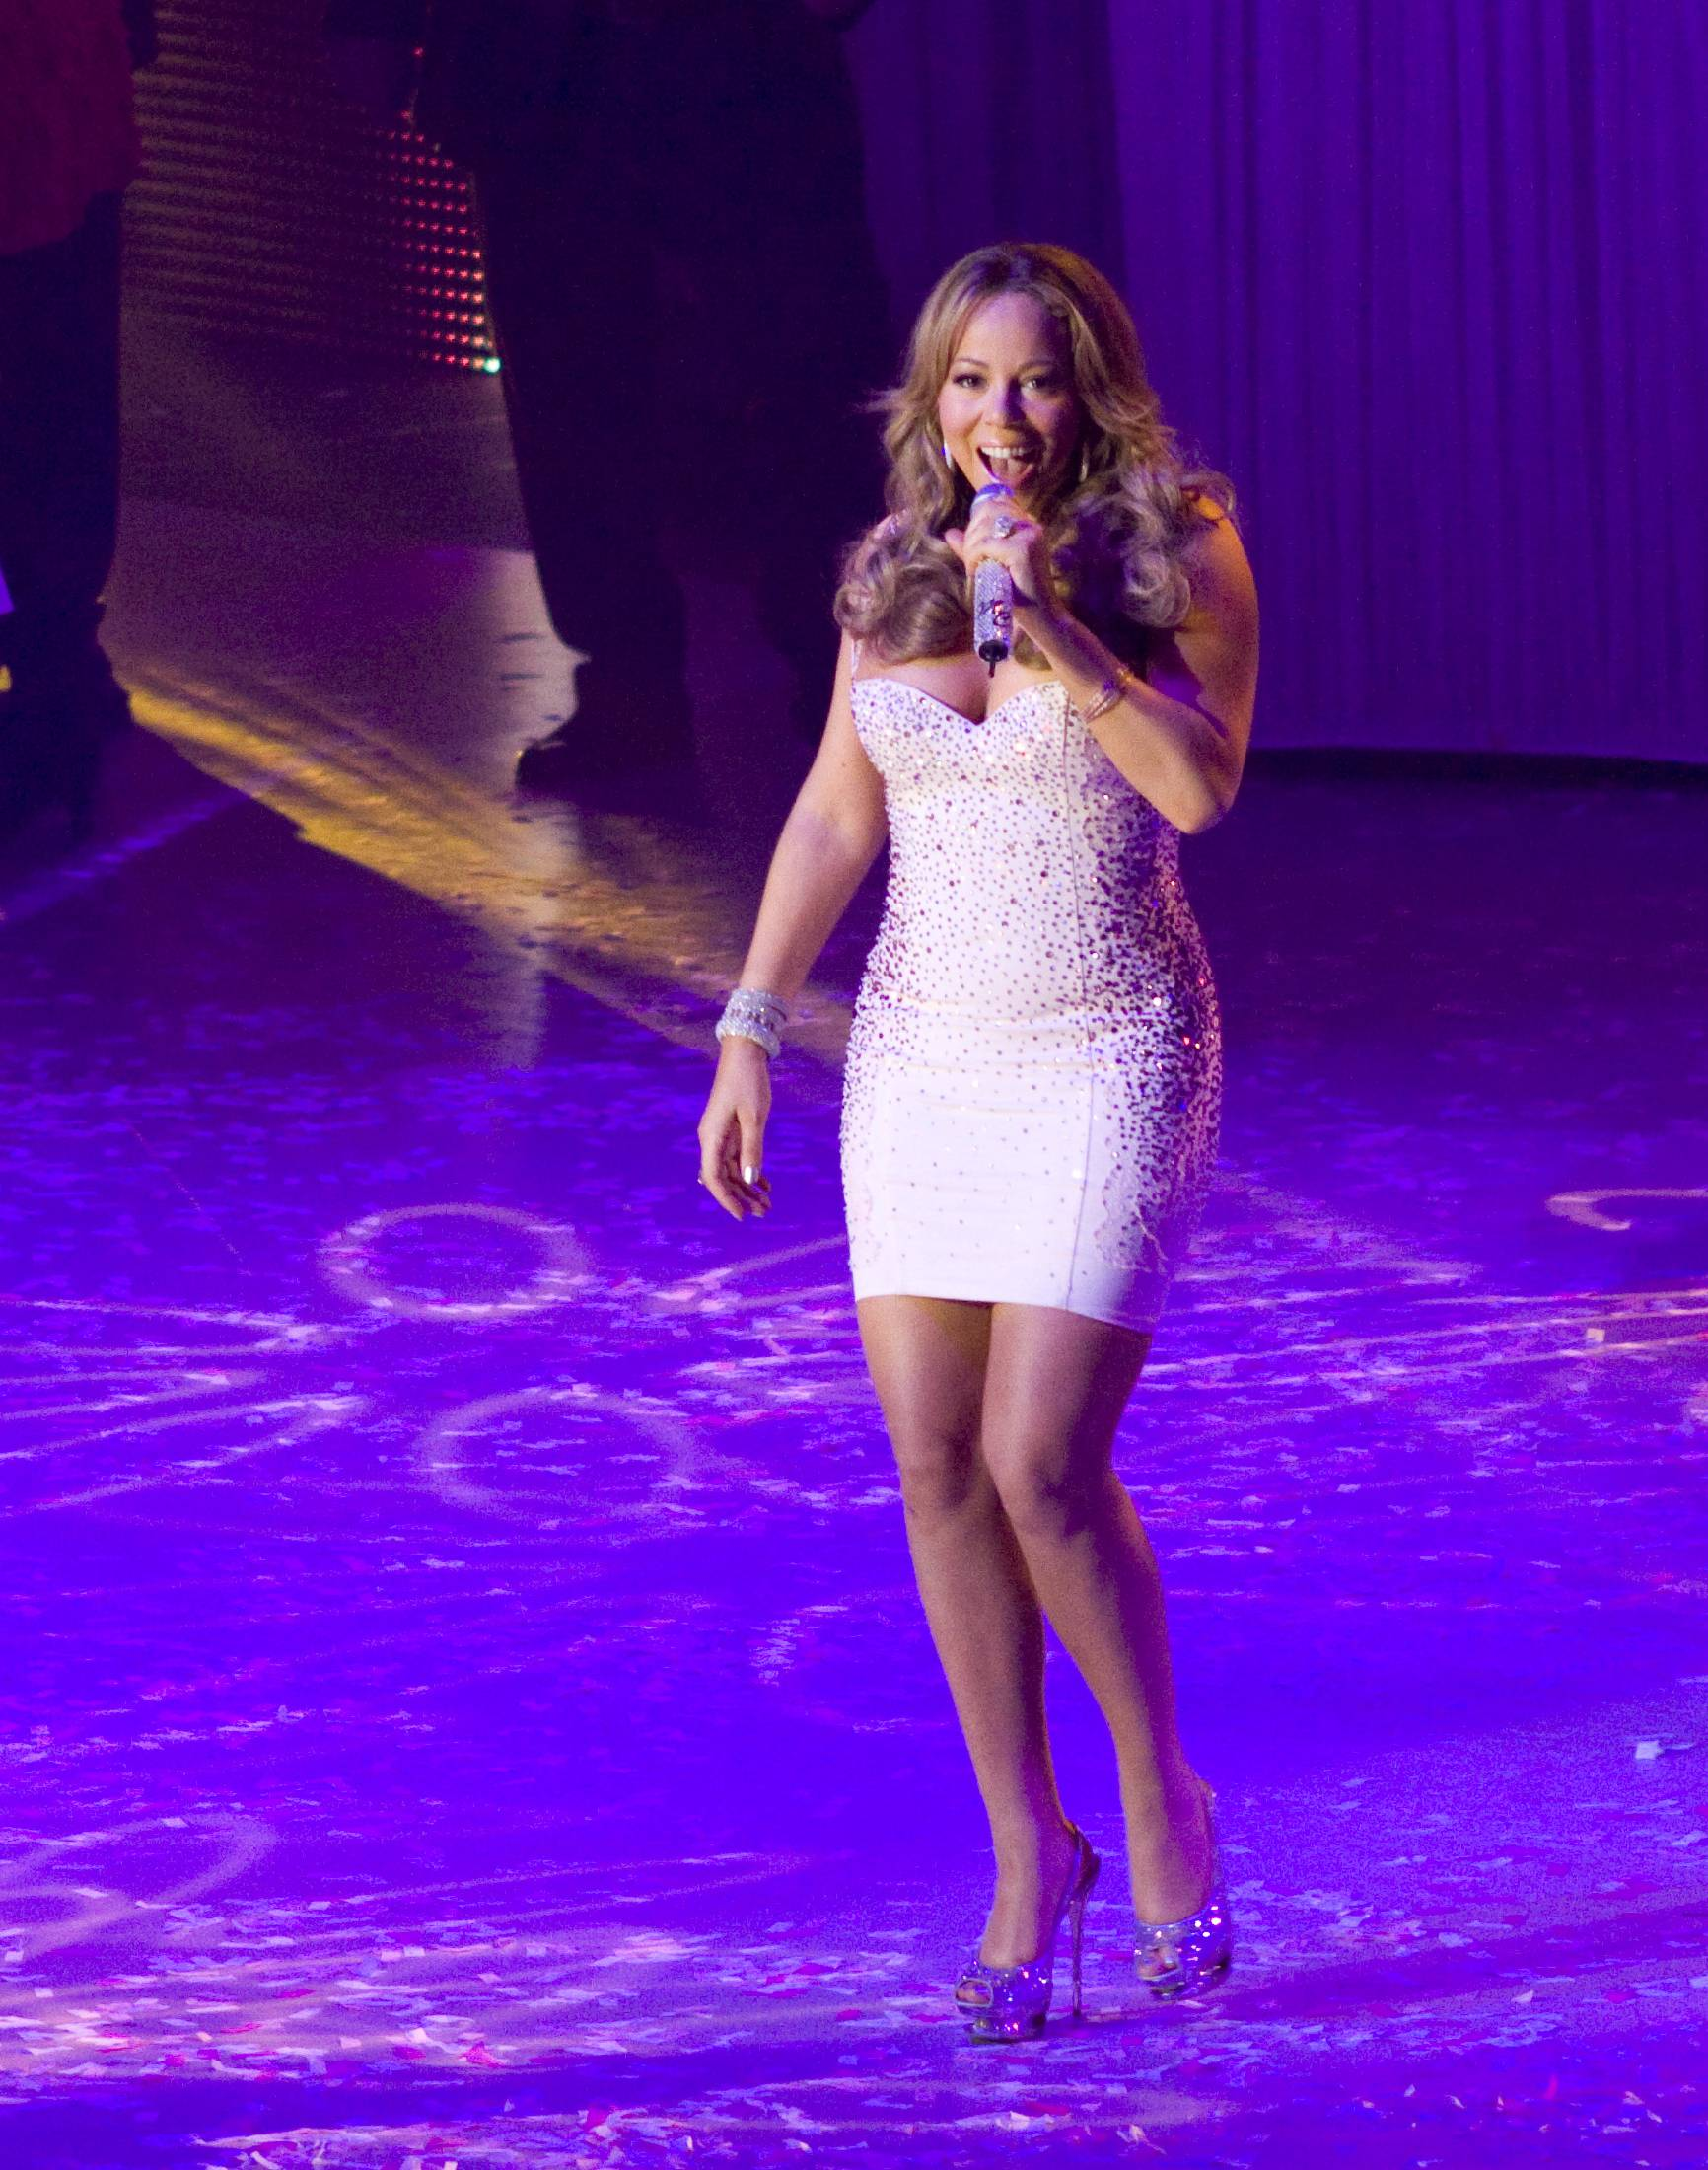 53535_Mariah_Carey_performs_at_Madison_Square_Garden_in_New_York_City-25_122_53lo.jpg